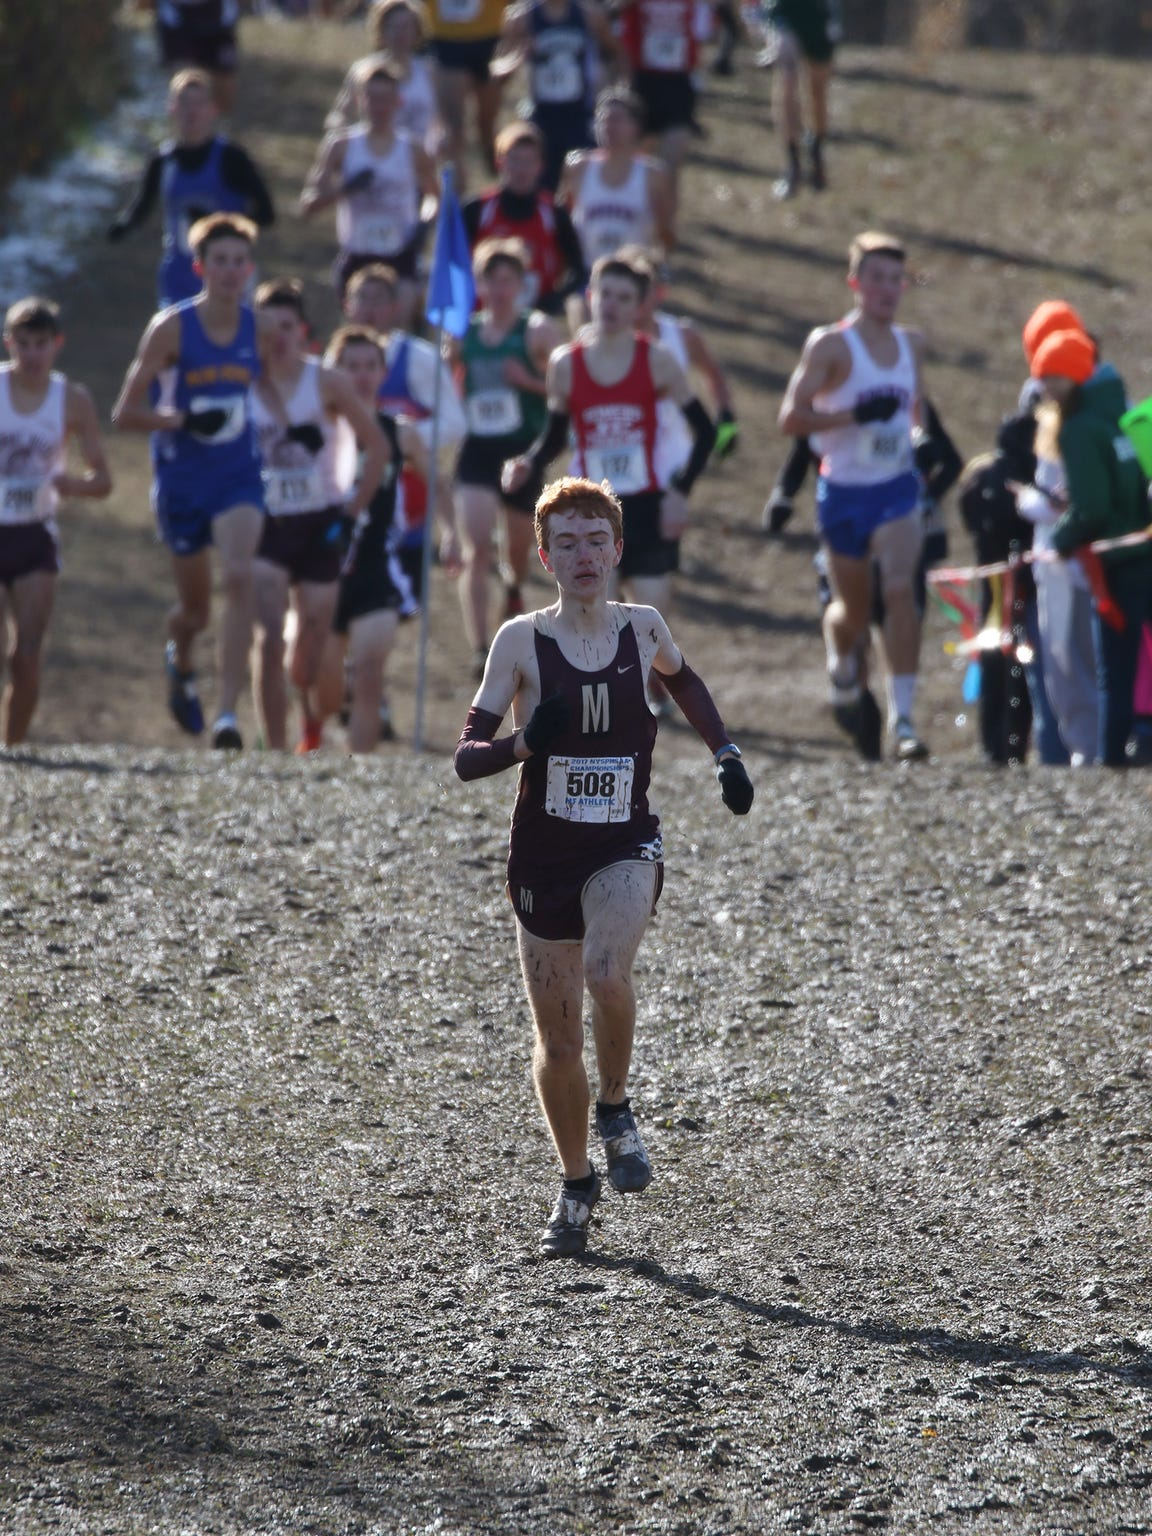 Pittsford Mendon's Nathan Lawler gets ahead of the pack of runners early during the New York State Cross Country Championship held at Wayne Central High School.